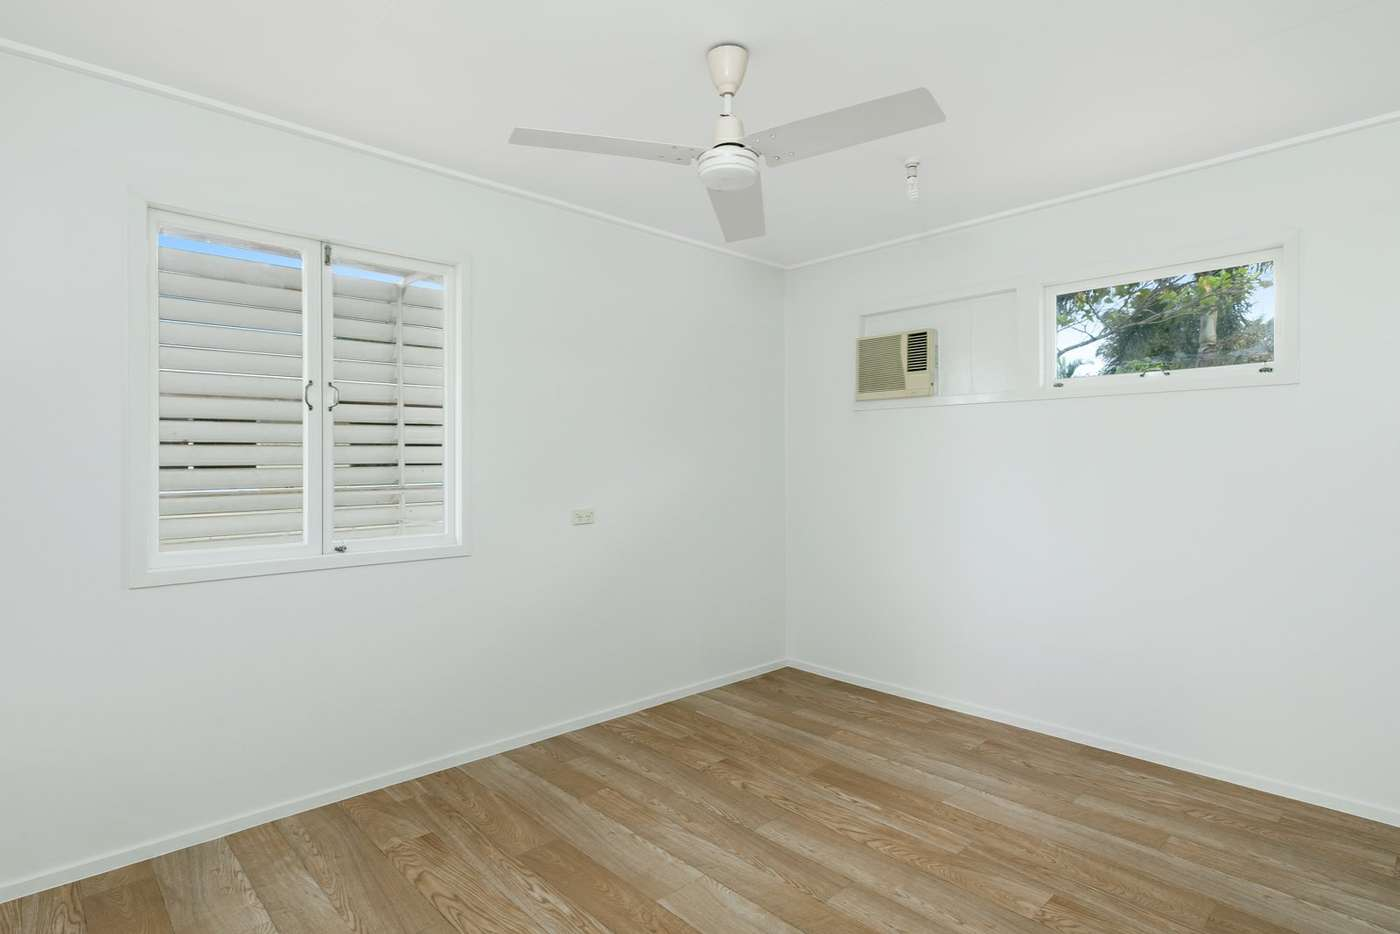 Seventh view of Homely house listing, 124 Wilkinson Street, Manunda QLD 4870